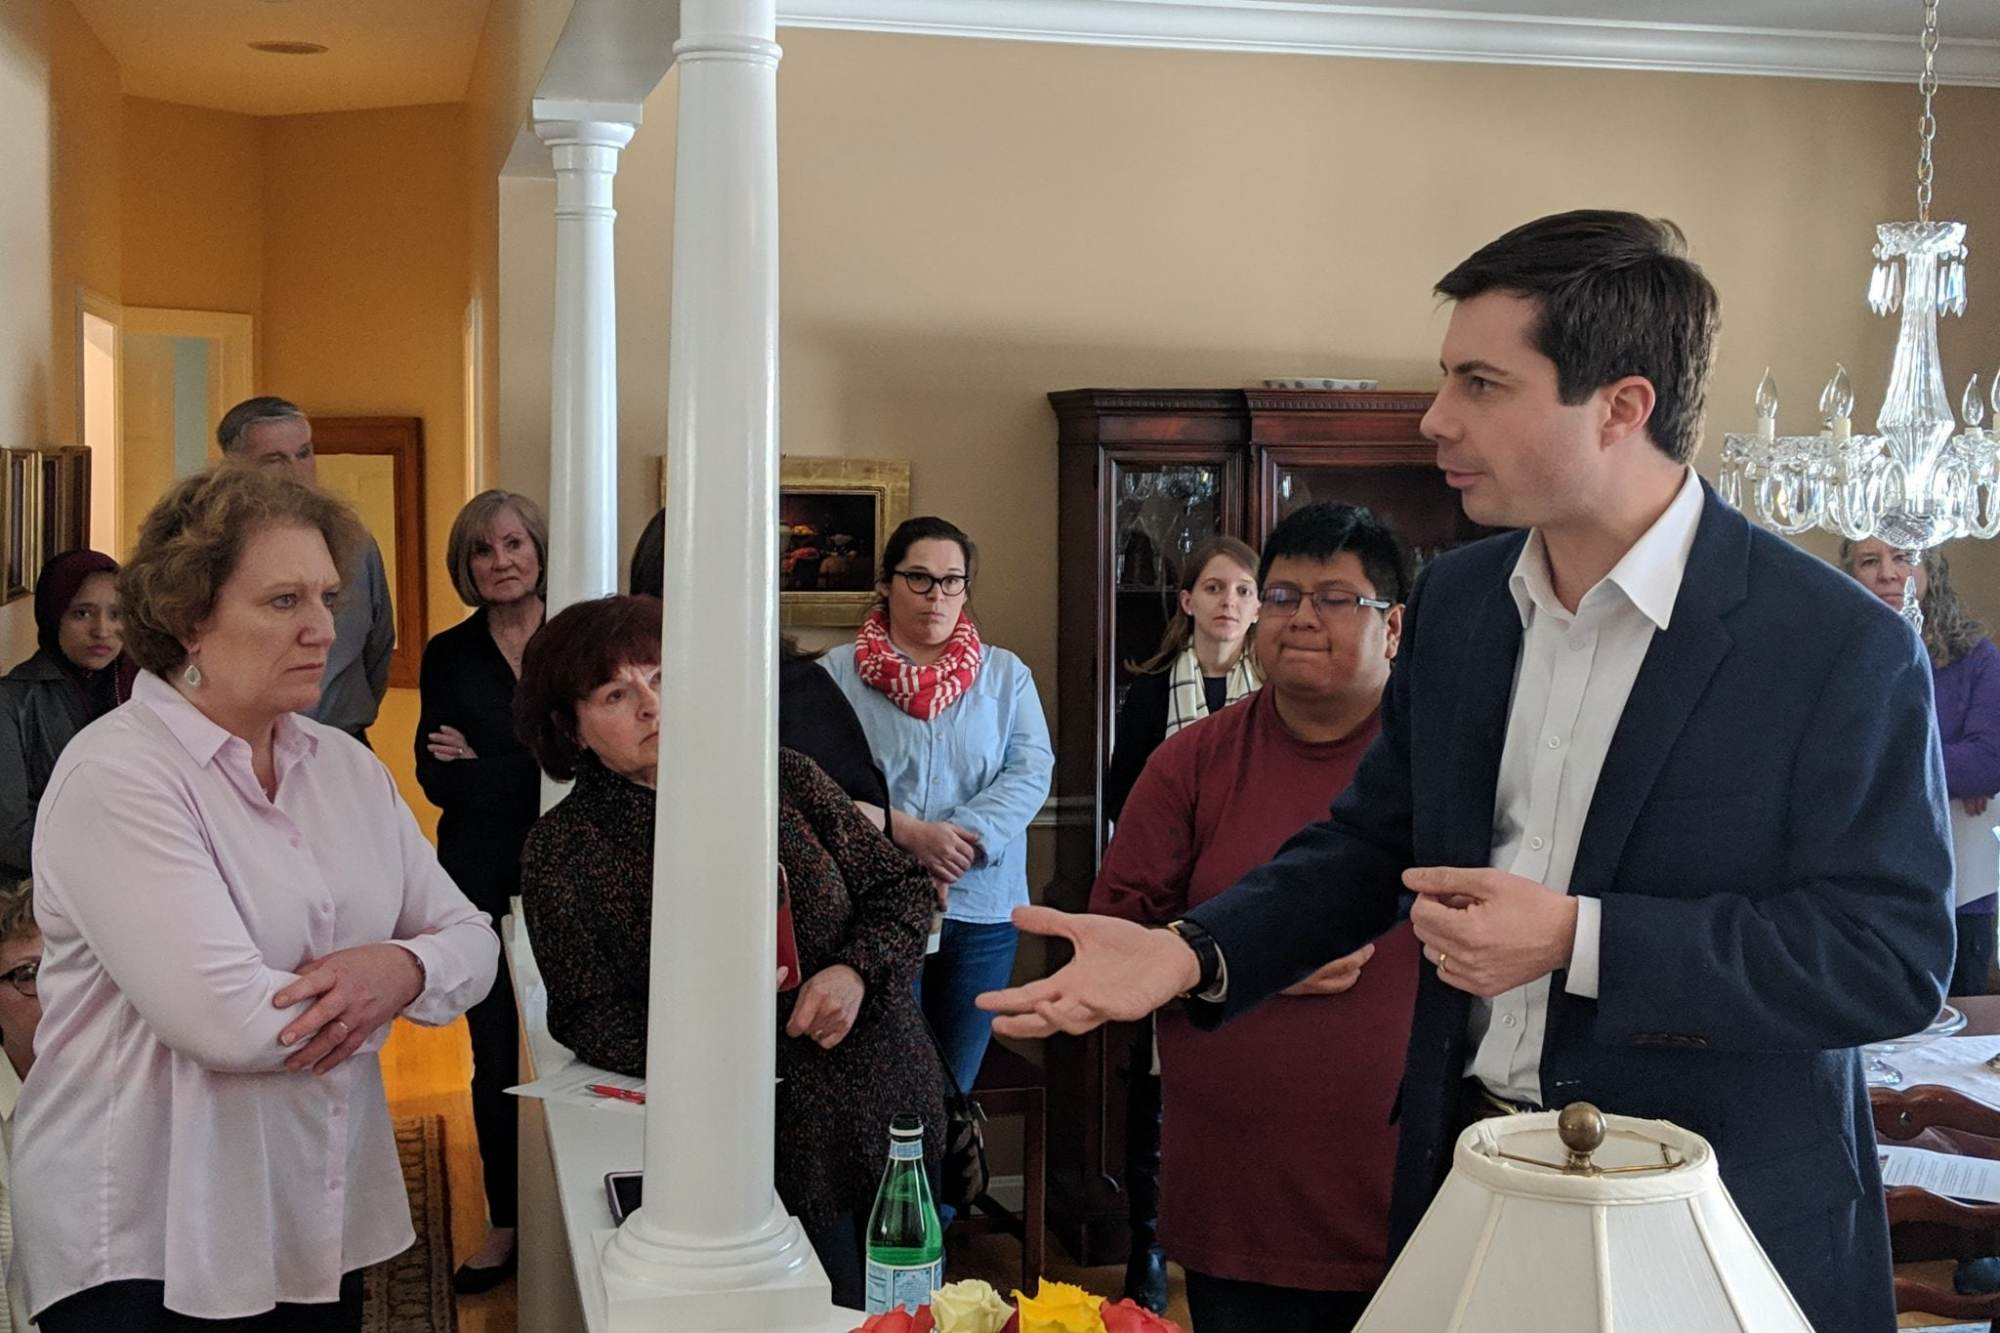 Back In South Bend, Buttigieg Met By: 'Stop Telling People to Shut Up!'